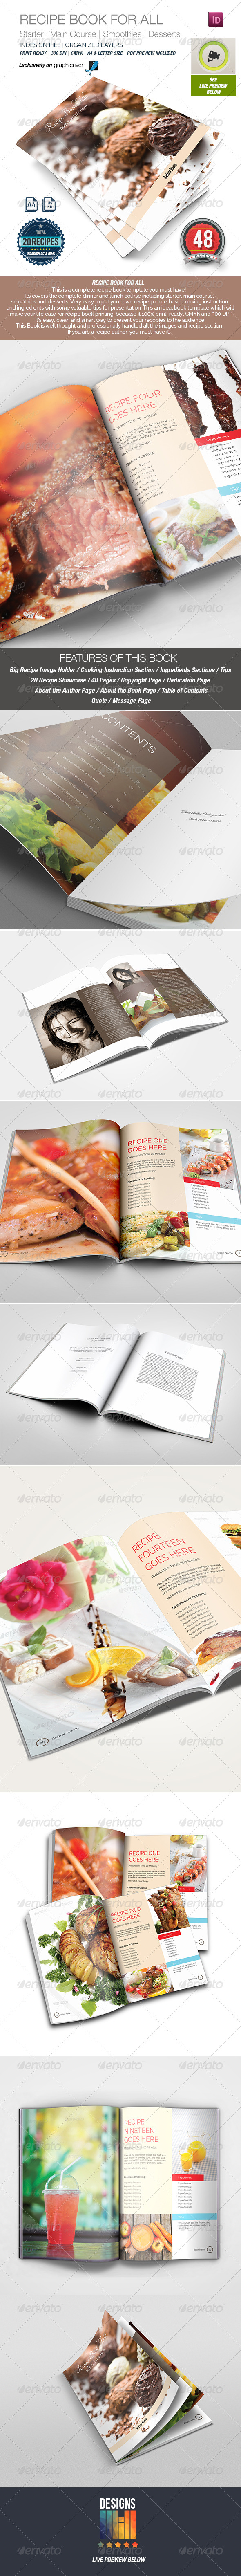 Recipe Book Template for All - Informational Brochures